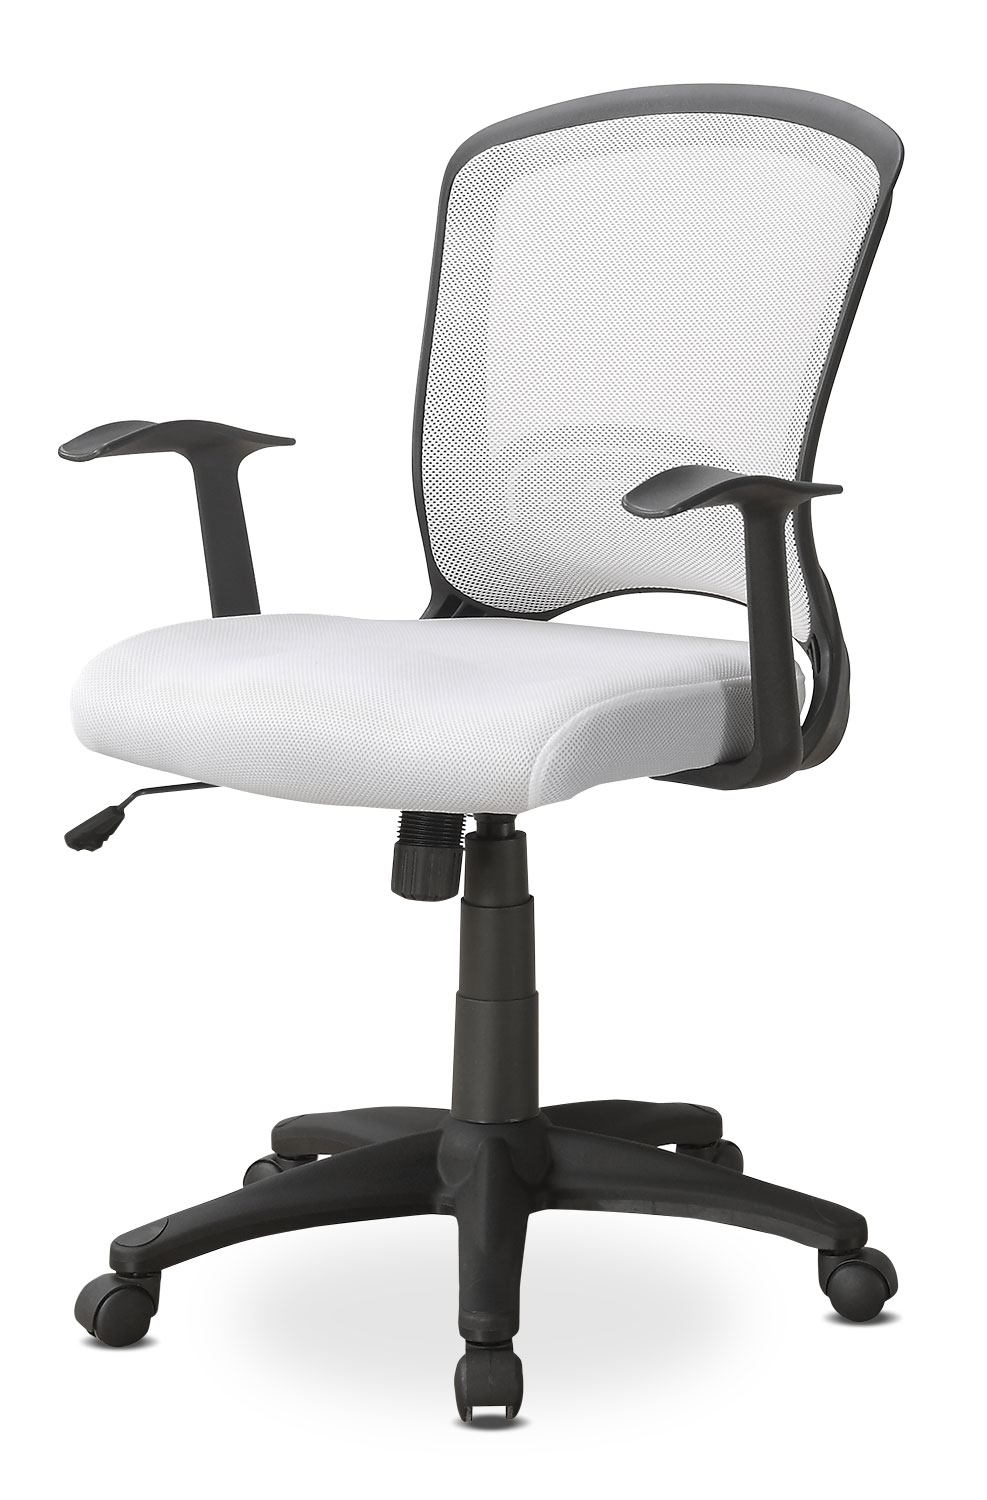 Home Office Furniture - Reilly Office Chair - White